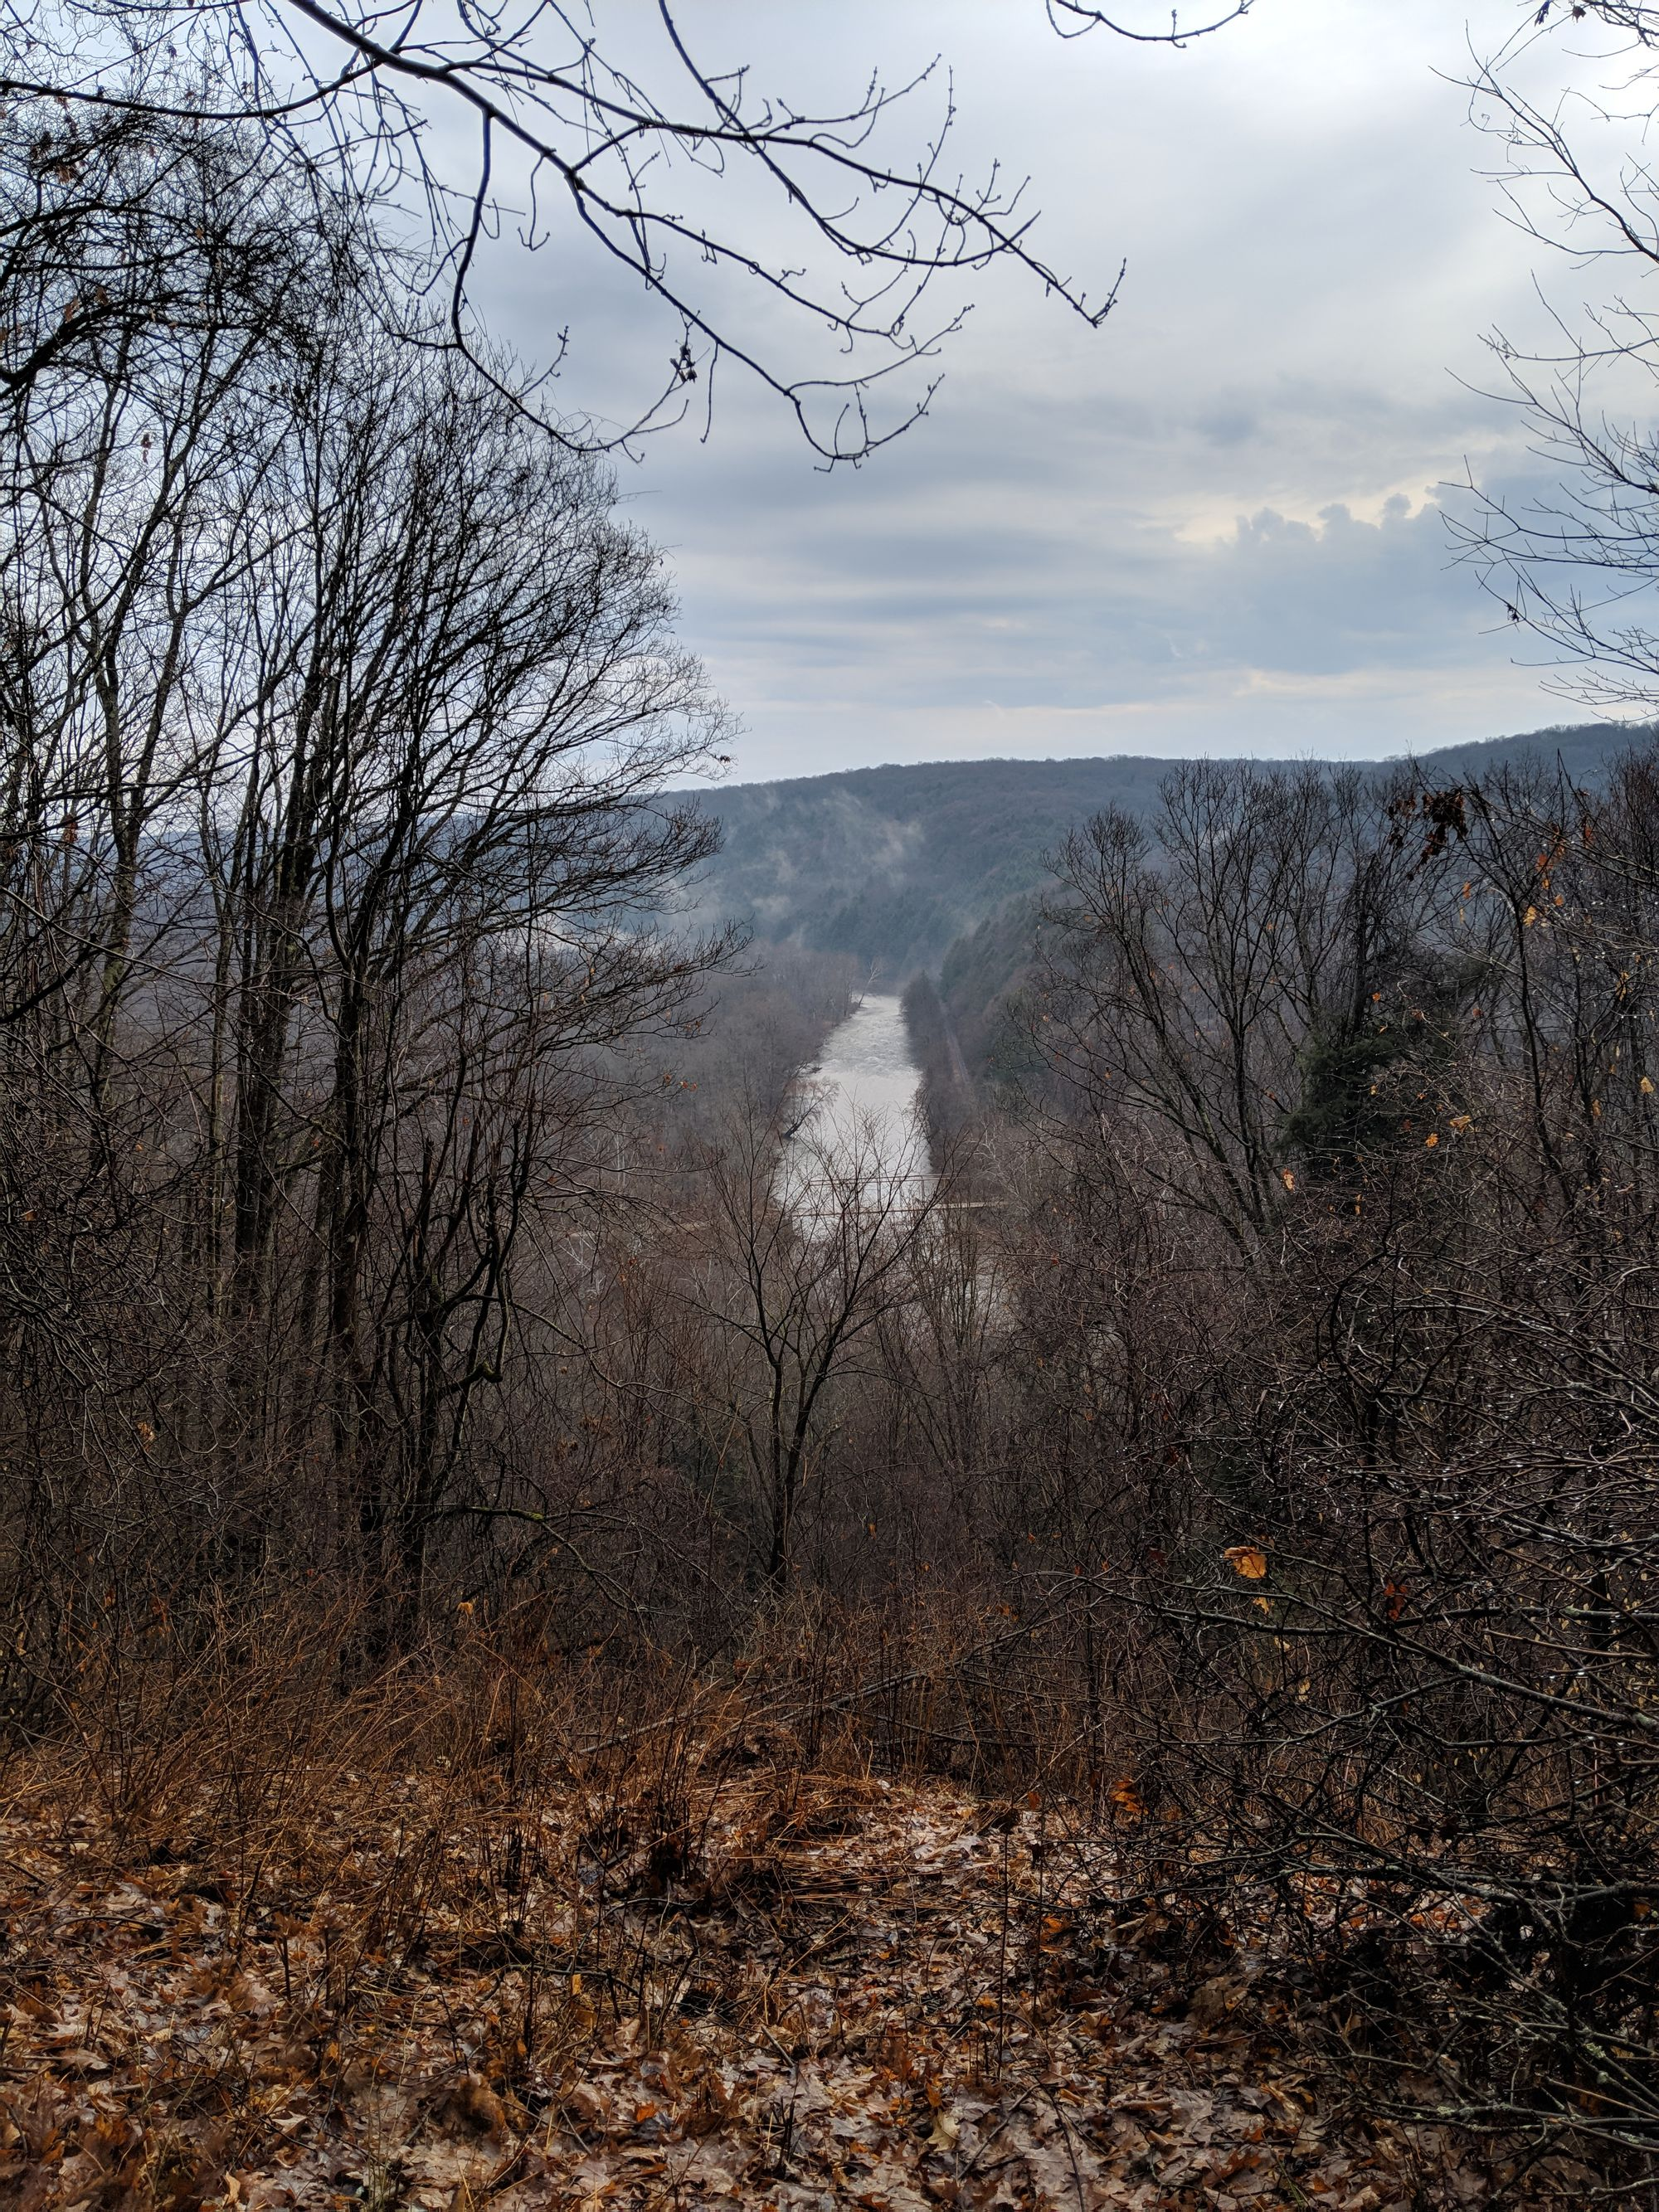 Trip Report: Oil Creek State Park, PA